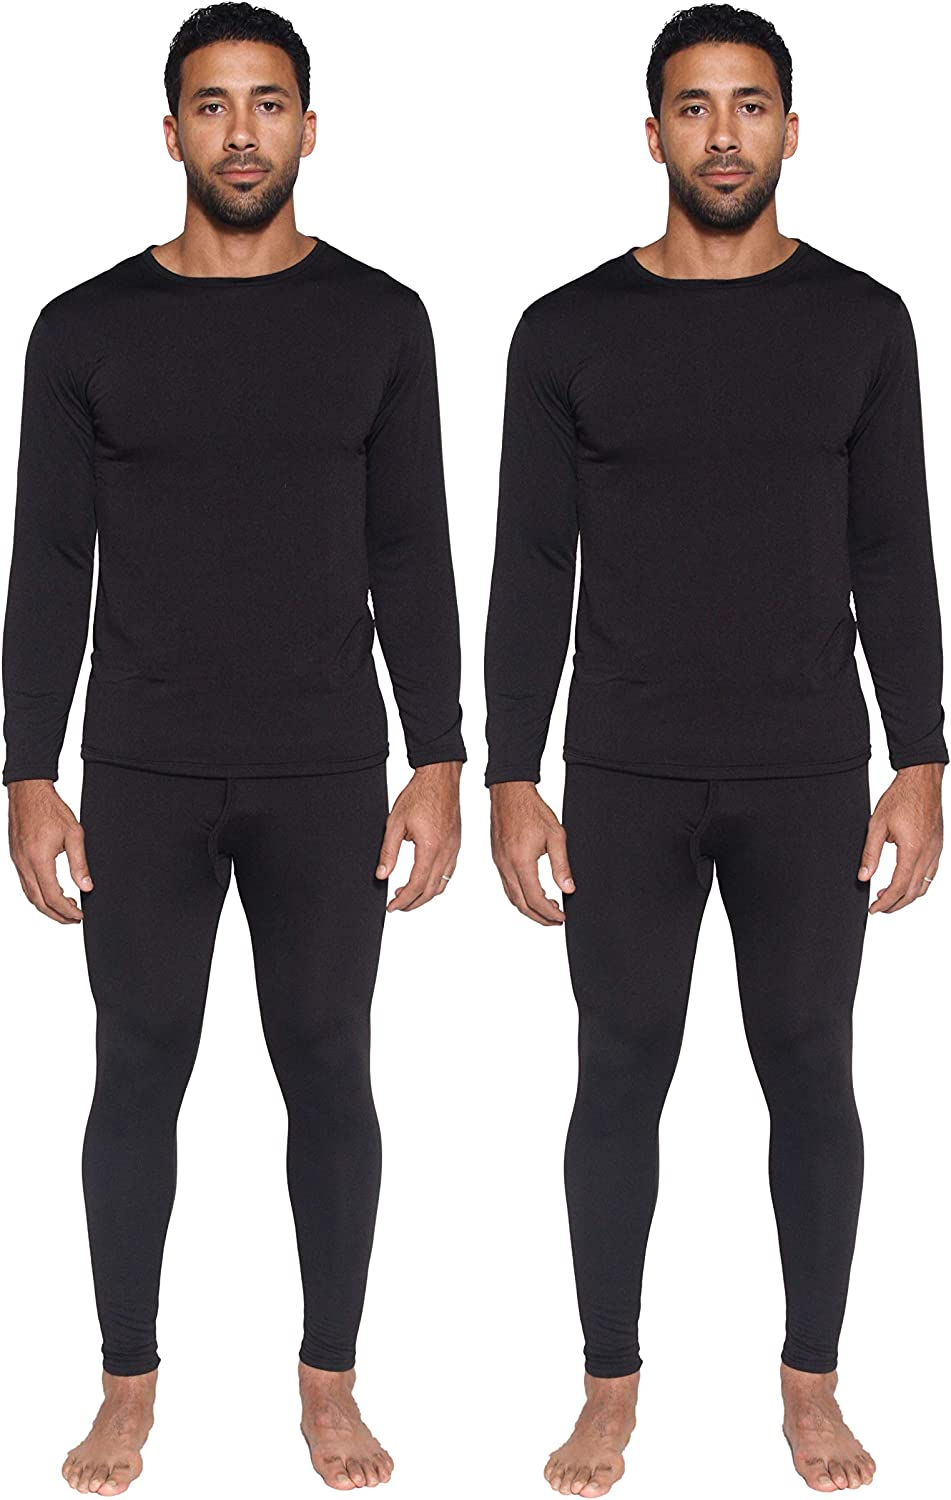 2 Mens Thermal Sets - Thermal Underwear for Men - Long Sleeve Top & Bottom Fleece Lined Long Johns for Men